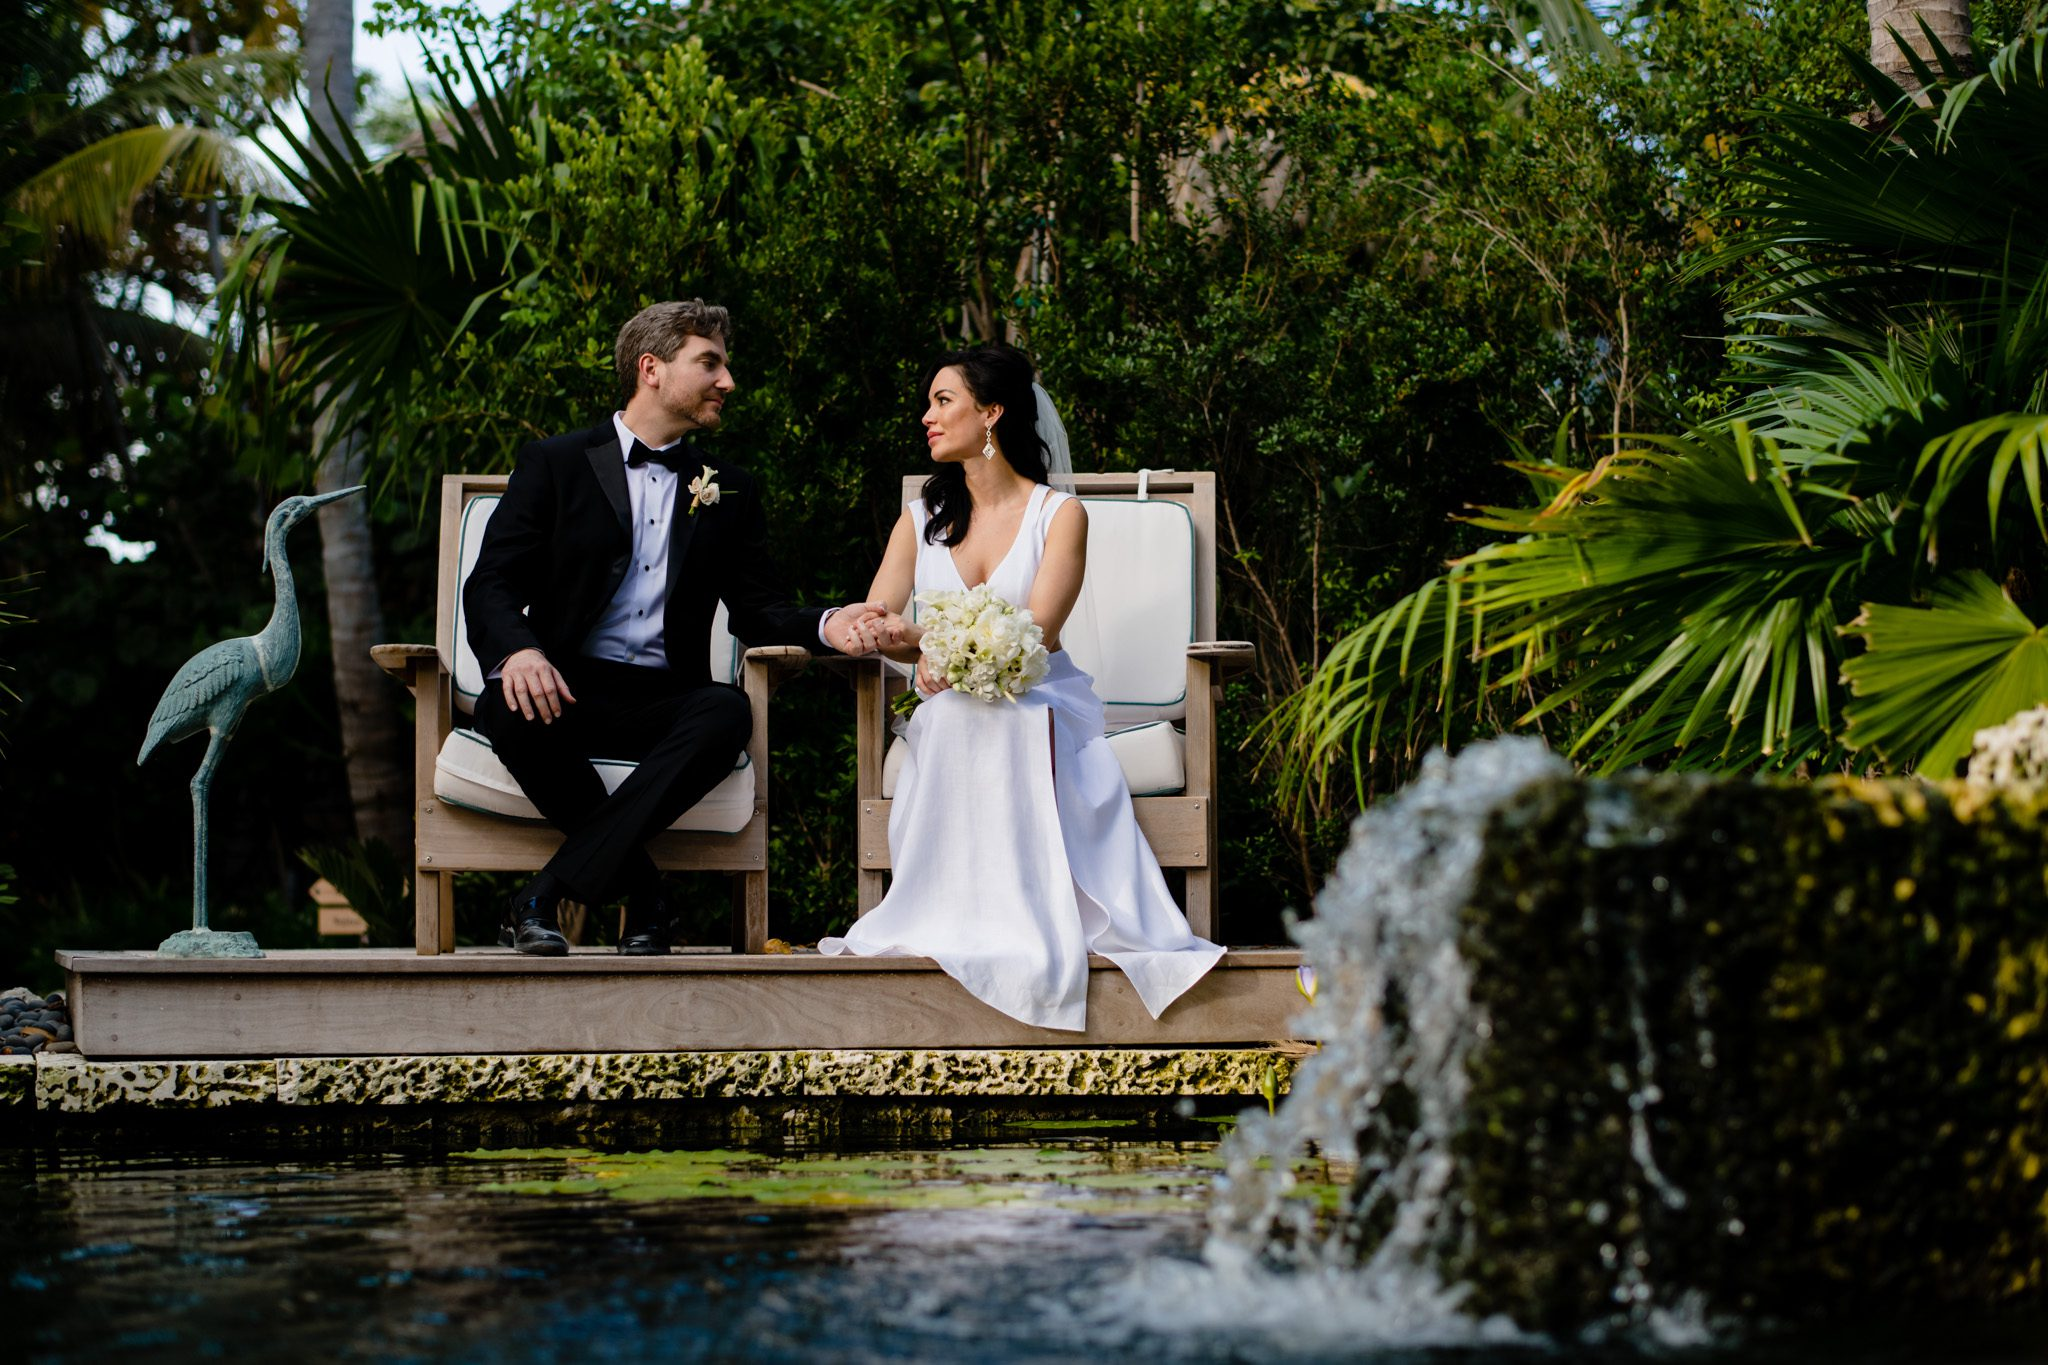 bride and groom sitting in chairs near a water feature on palm island